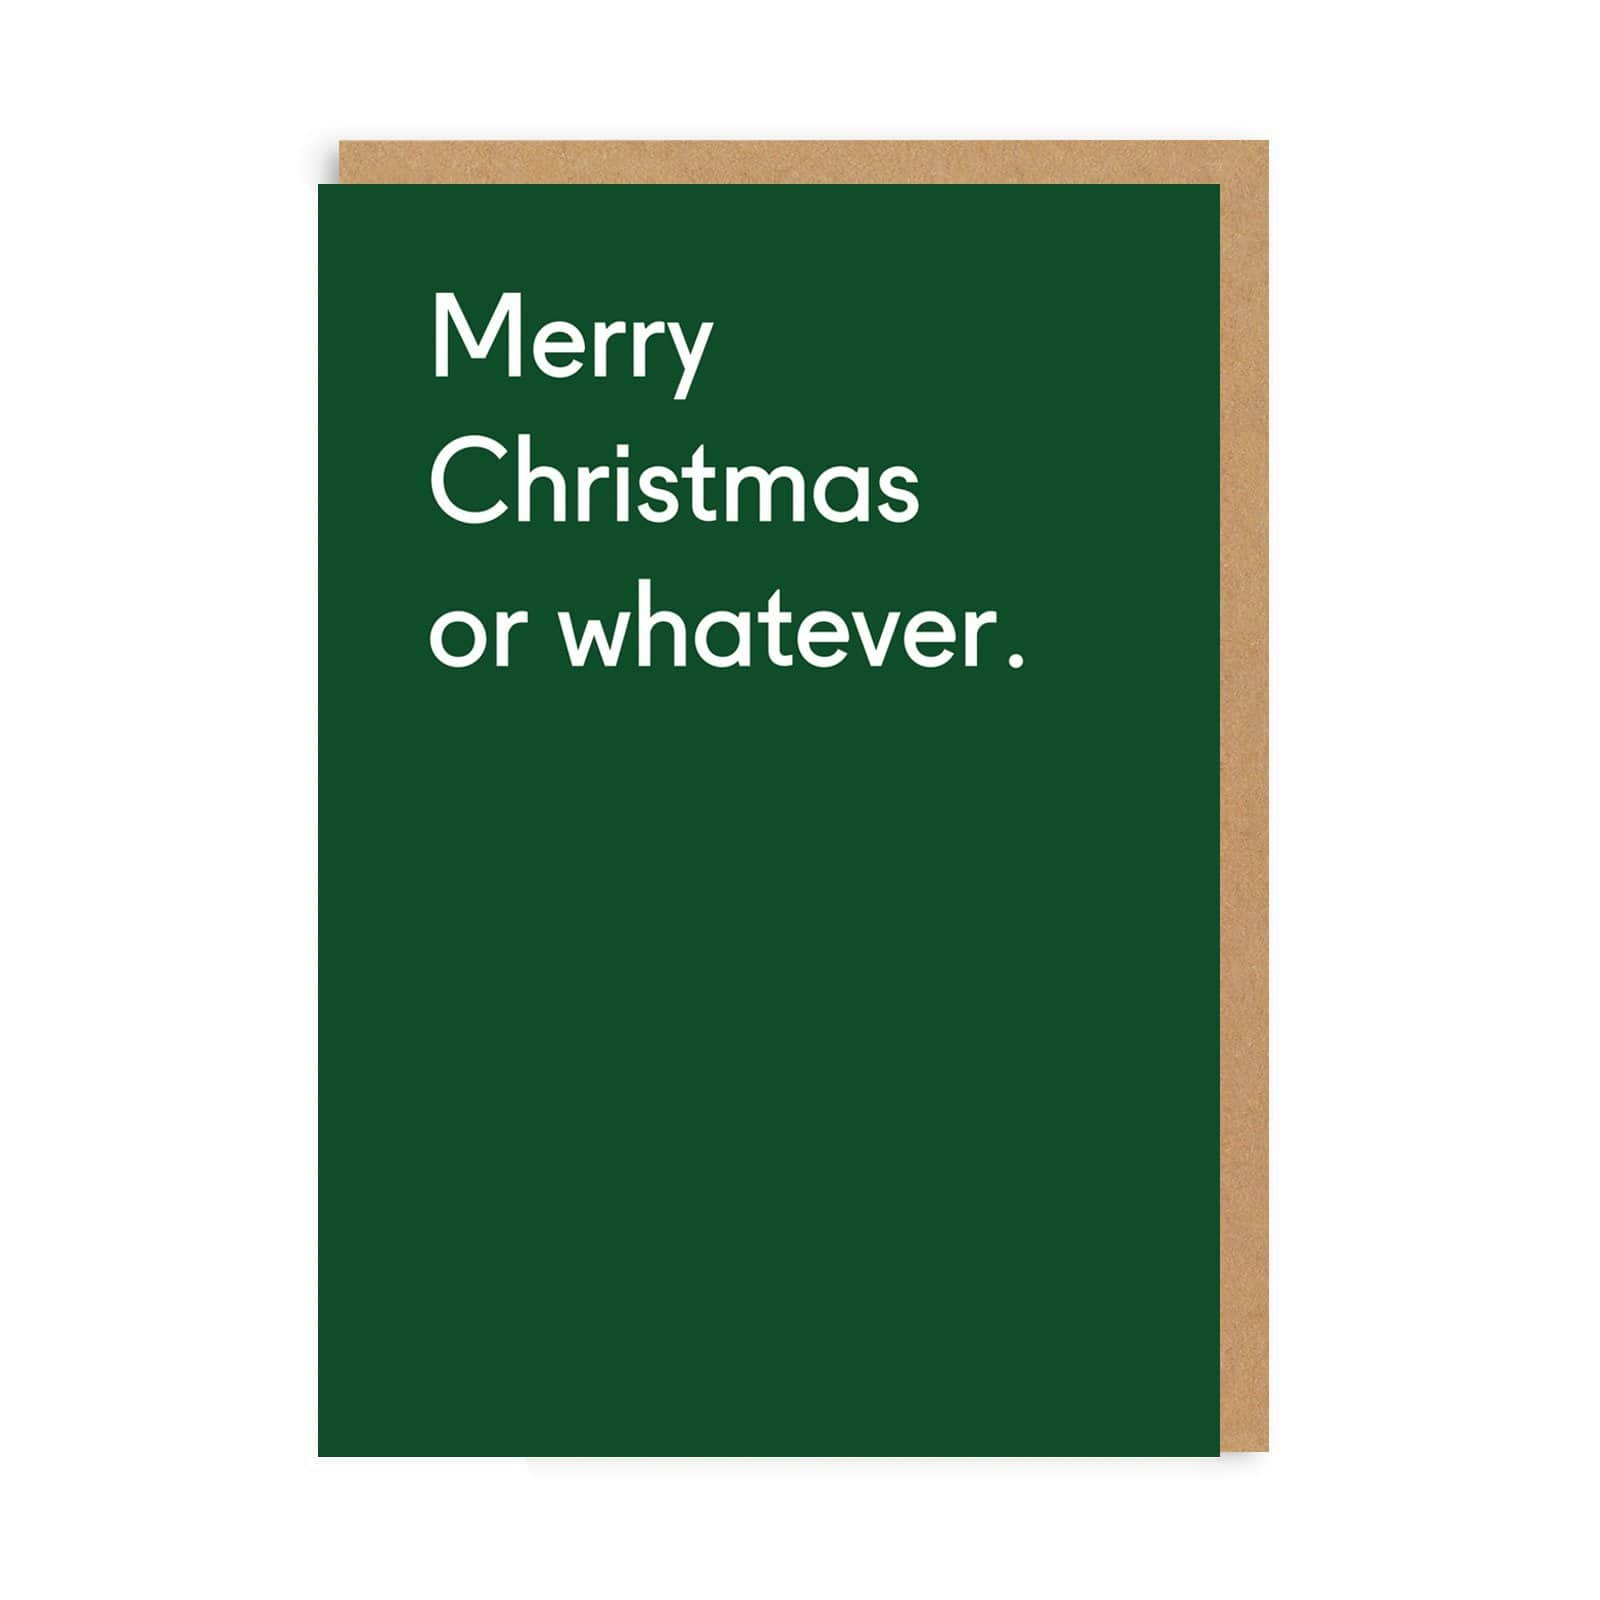 Merry Christmas Or Whatever Greeting Card